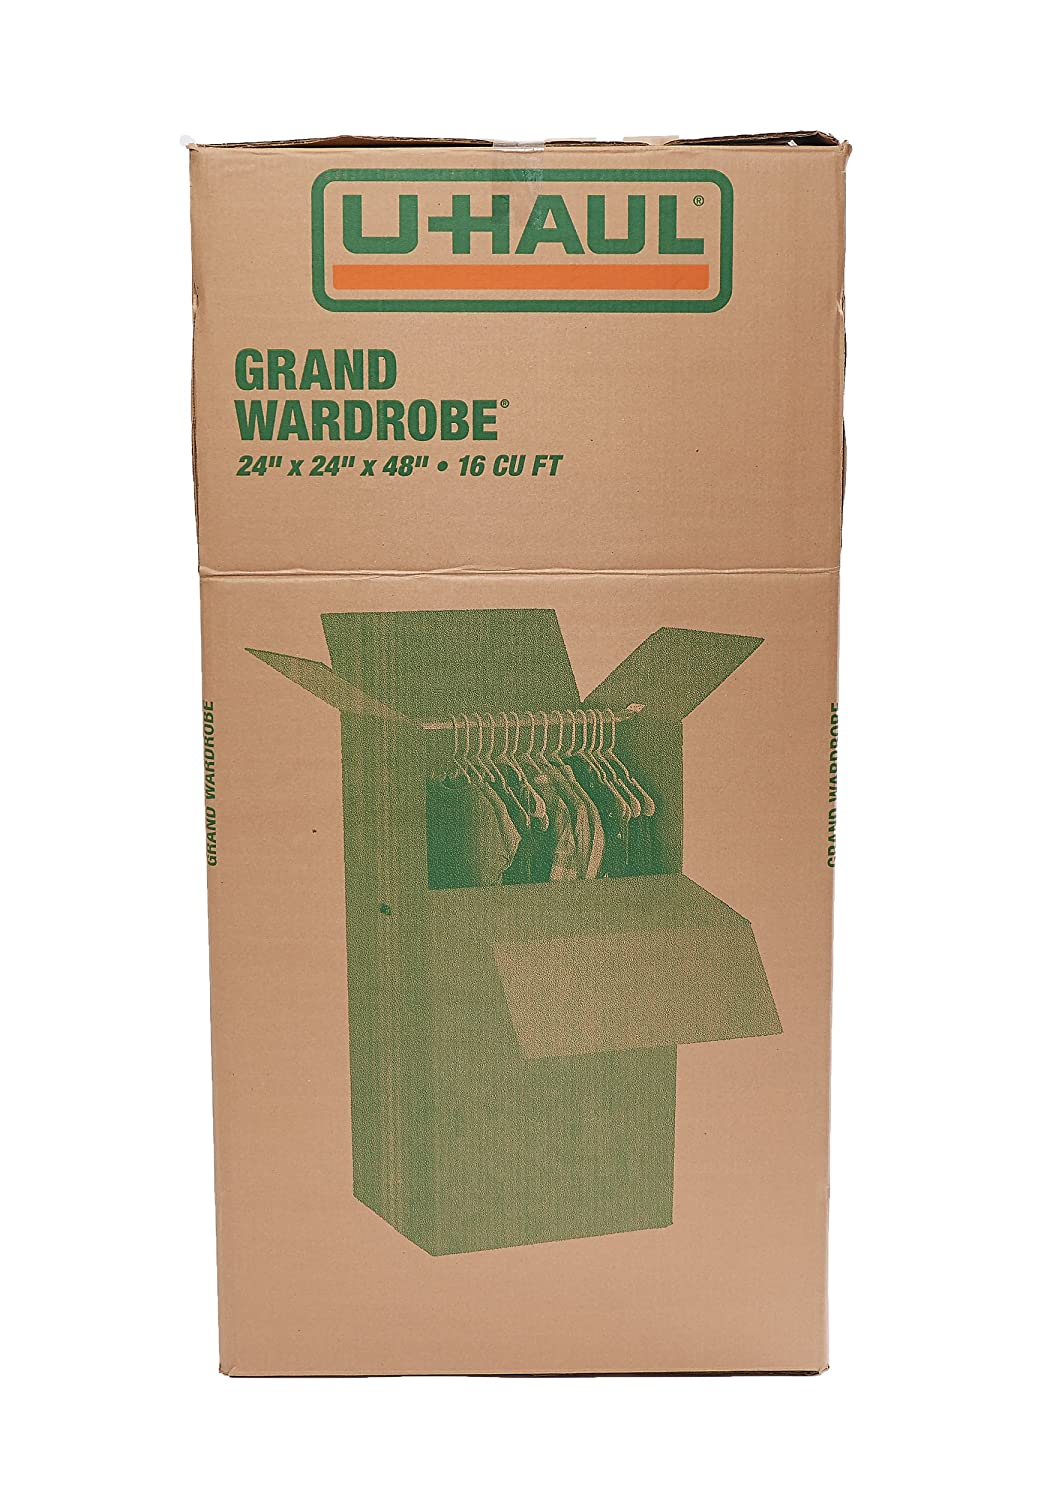 amazon com u haul grand wardrobe moving boxes 24